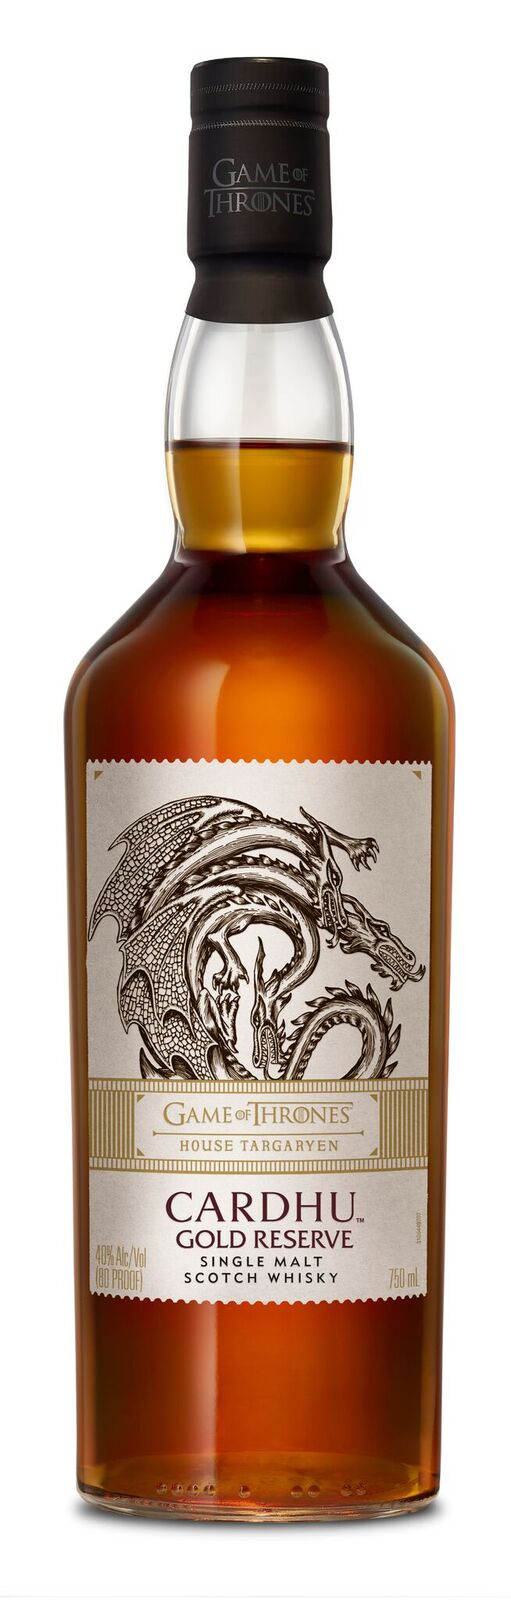 Game of Thrones House Targaryen— Cardhu Gold Reserve